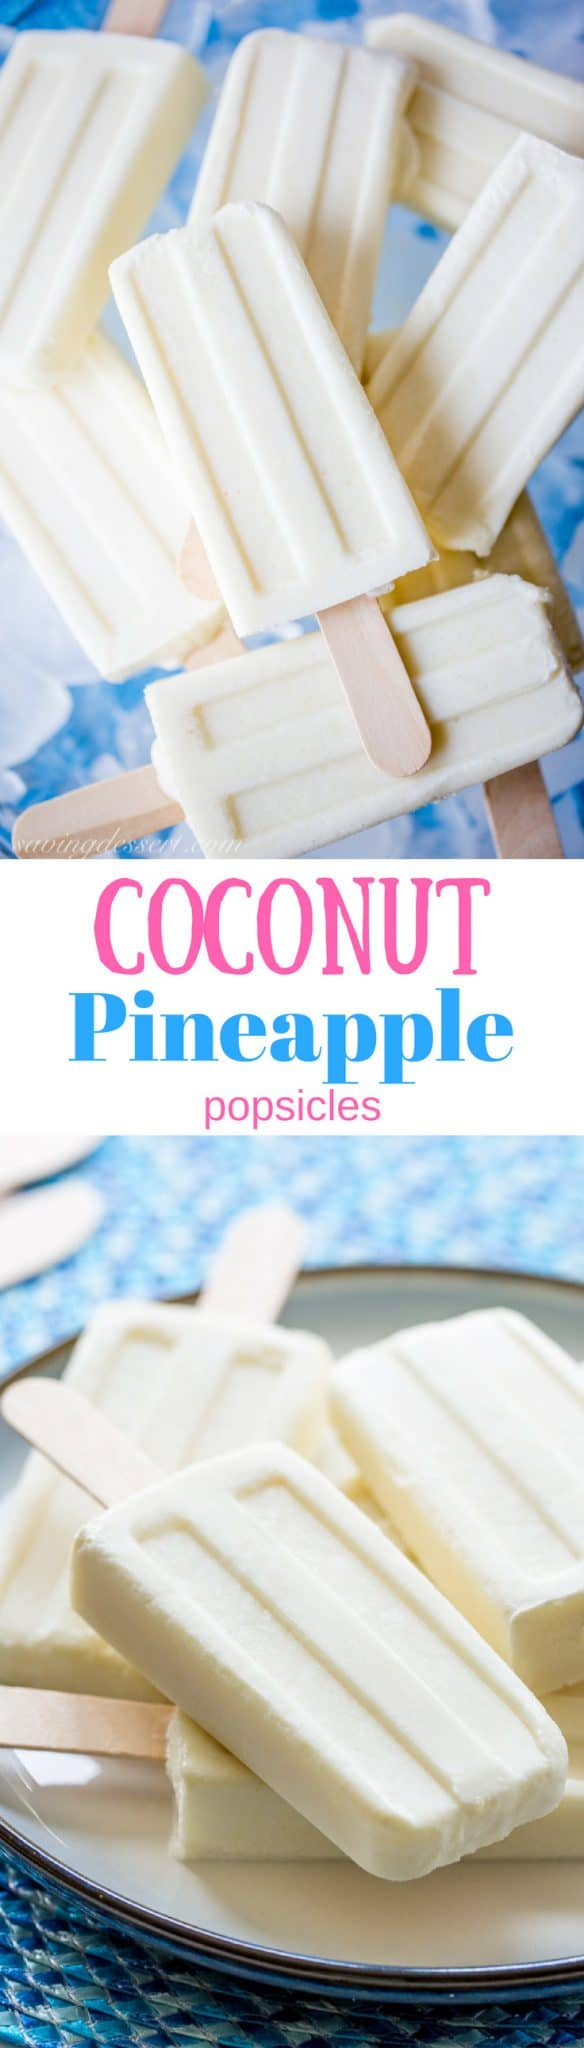 Creamy, smooth Coconut Pineapple Popsicles are made with only 4-ingredients and couldn't be easier to prepare! #savingroomfordessert #popsicles #coconut #pineapple #summertreat #frozentreat #healthypopsicles